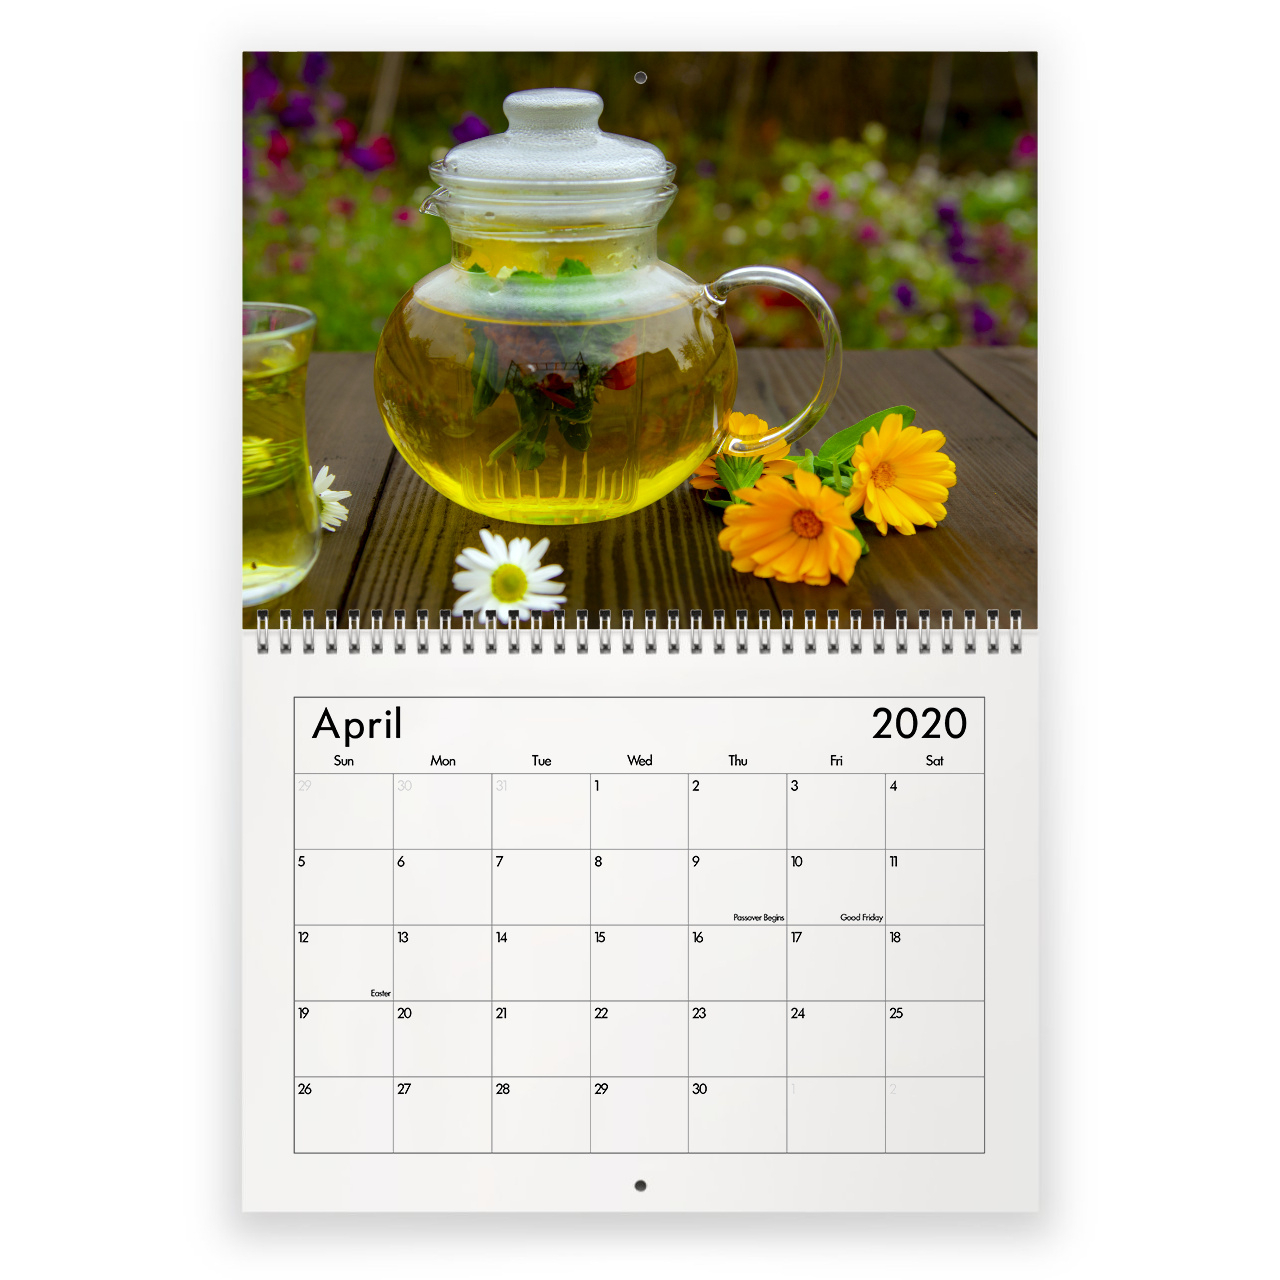 Tea 2021 Calendar throughout National Food Calendar 2021